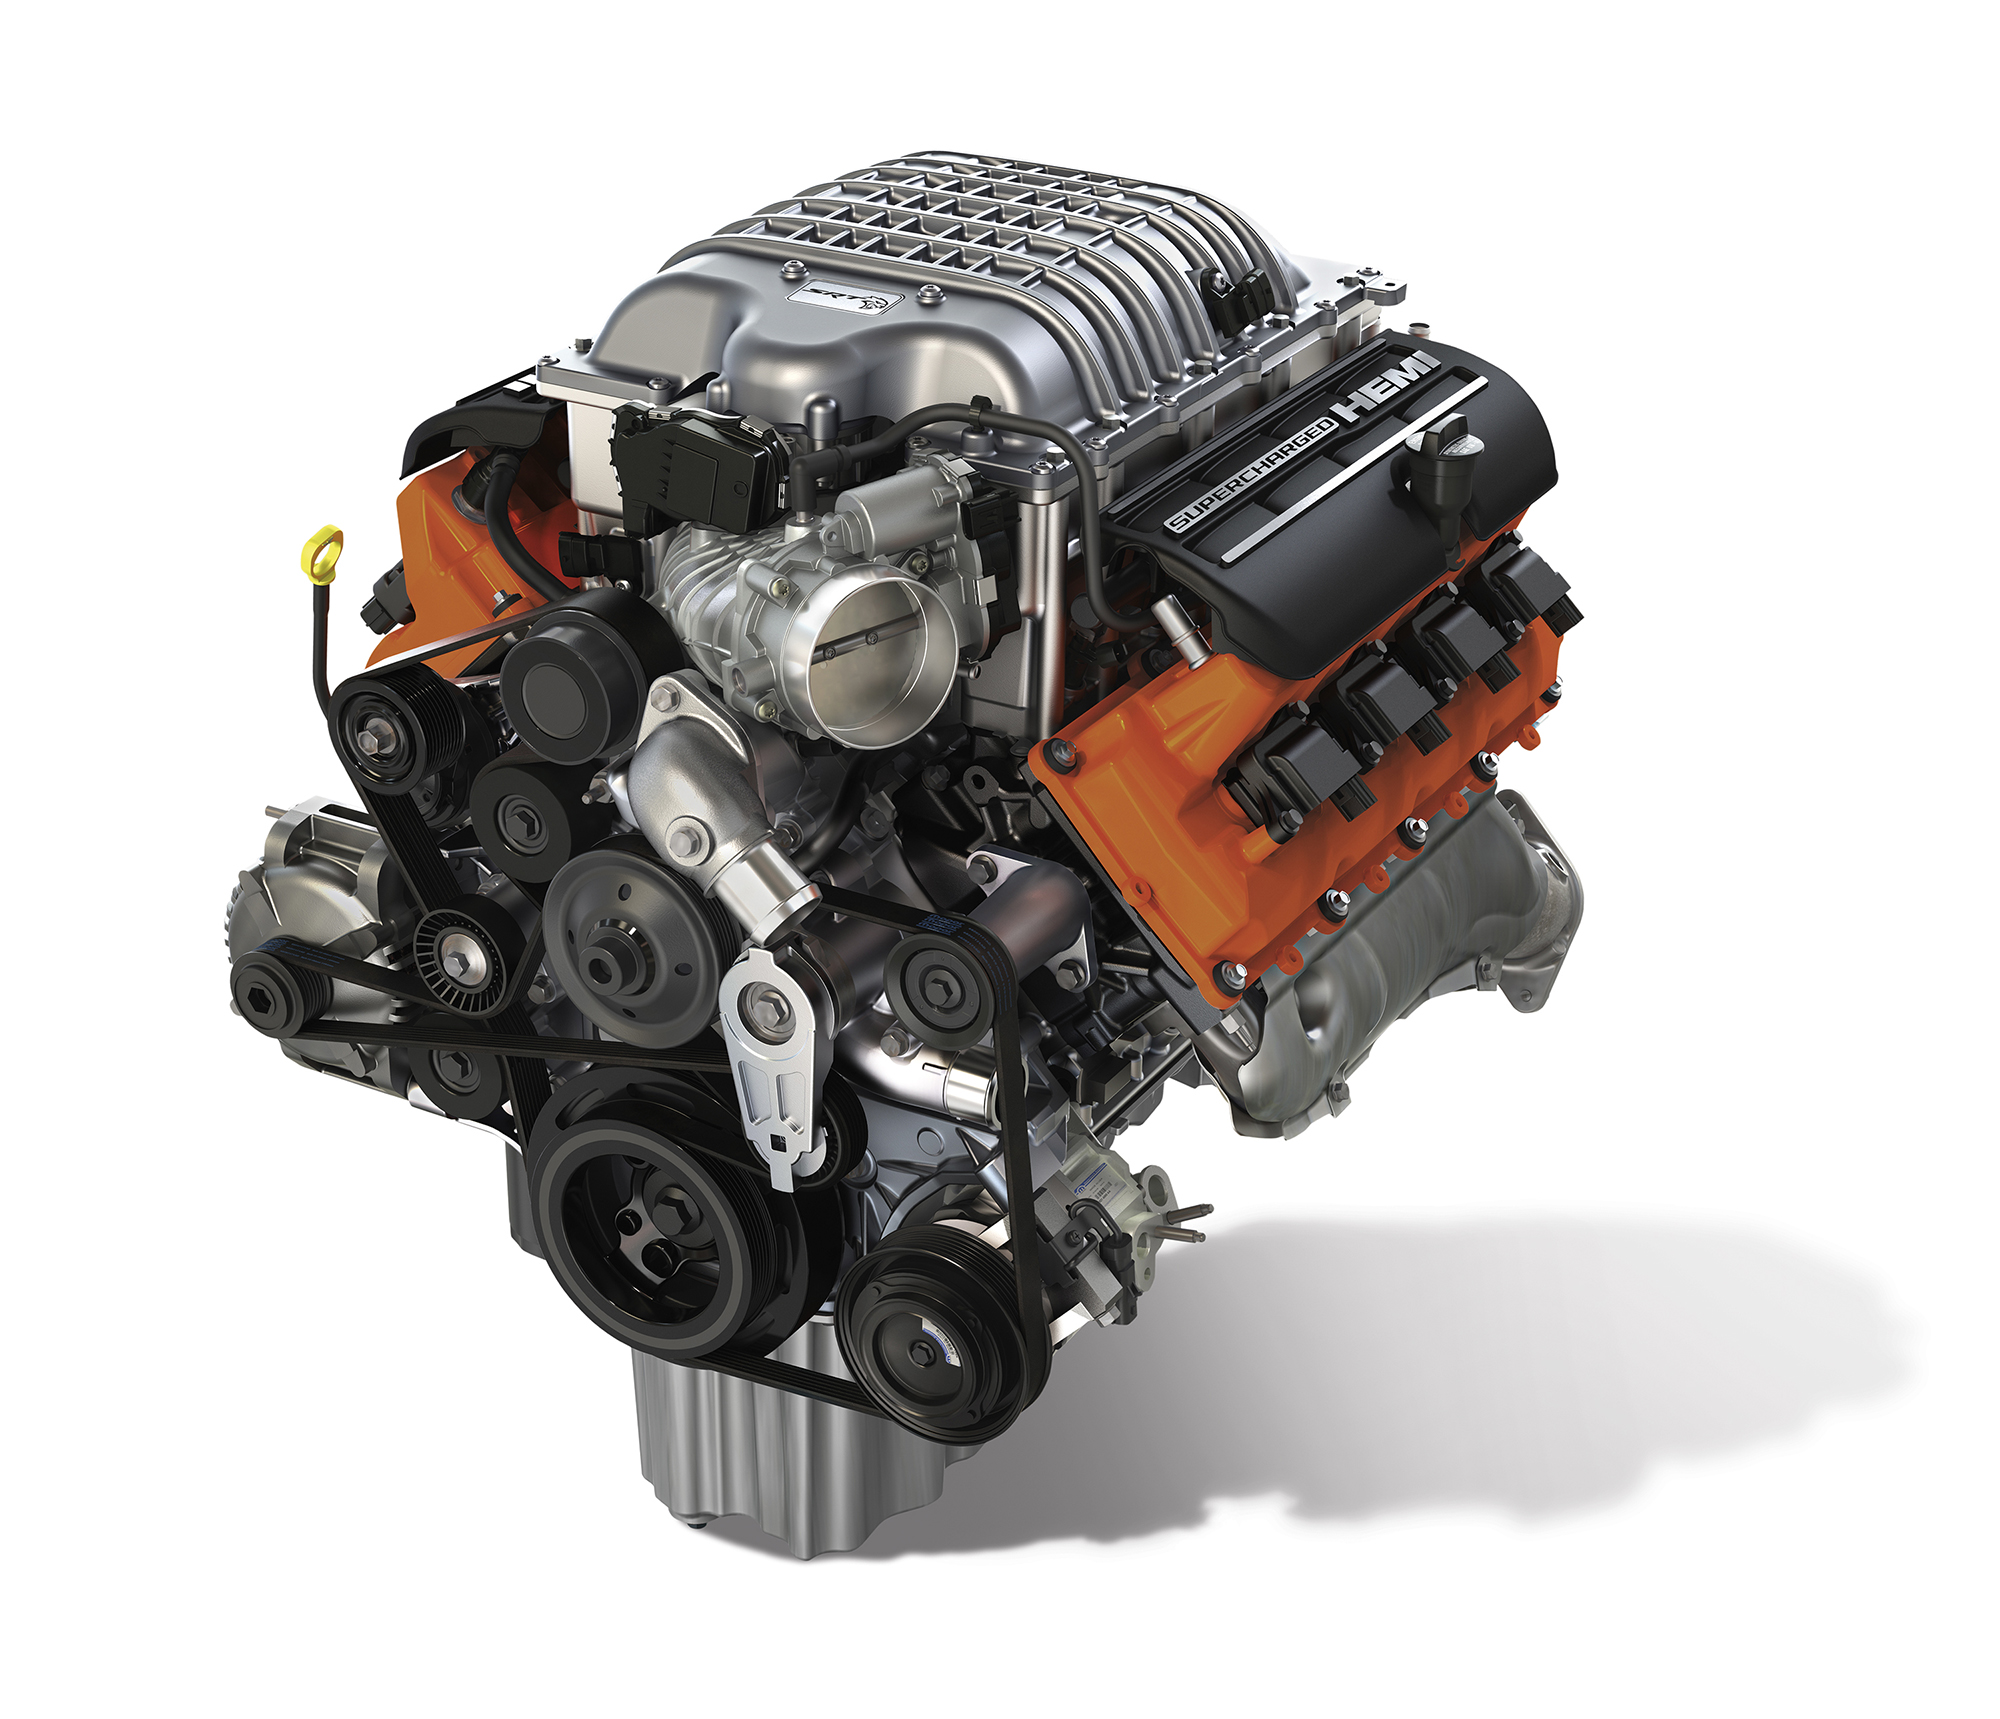 Crate Motors Hellcat Crate Engine Can Be Had For Big Discount